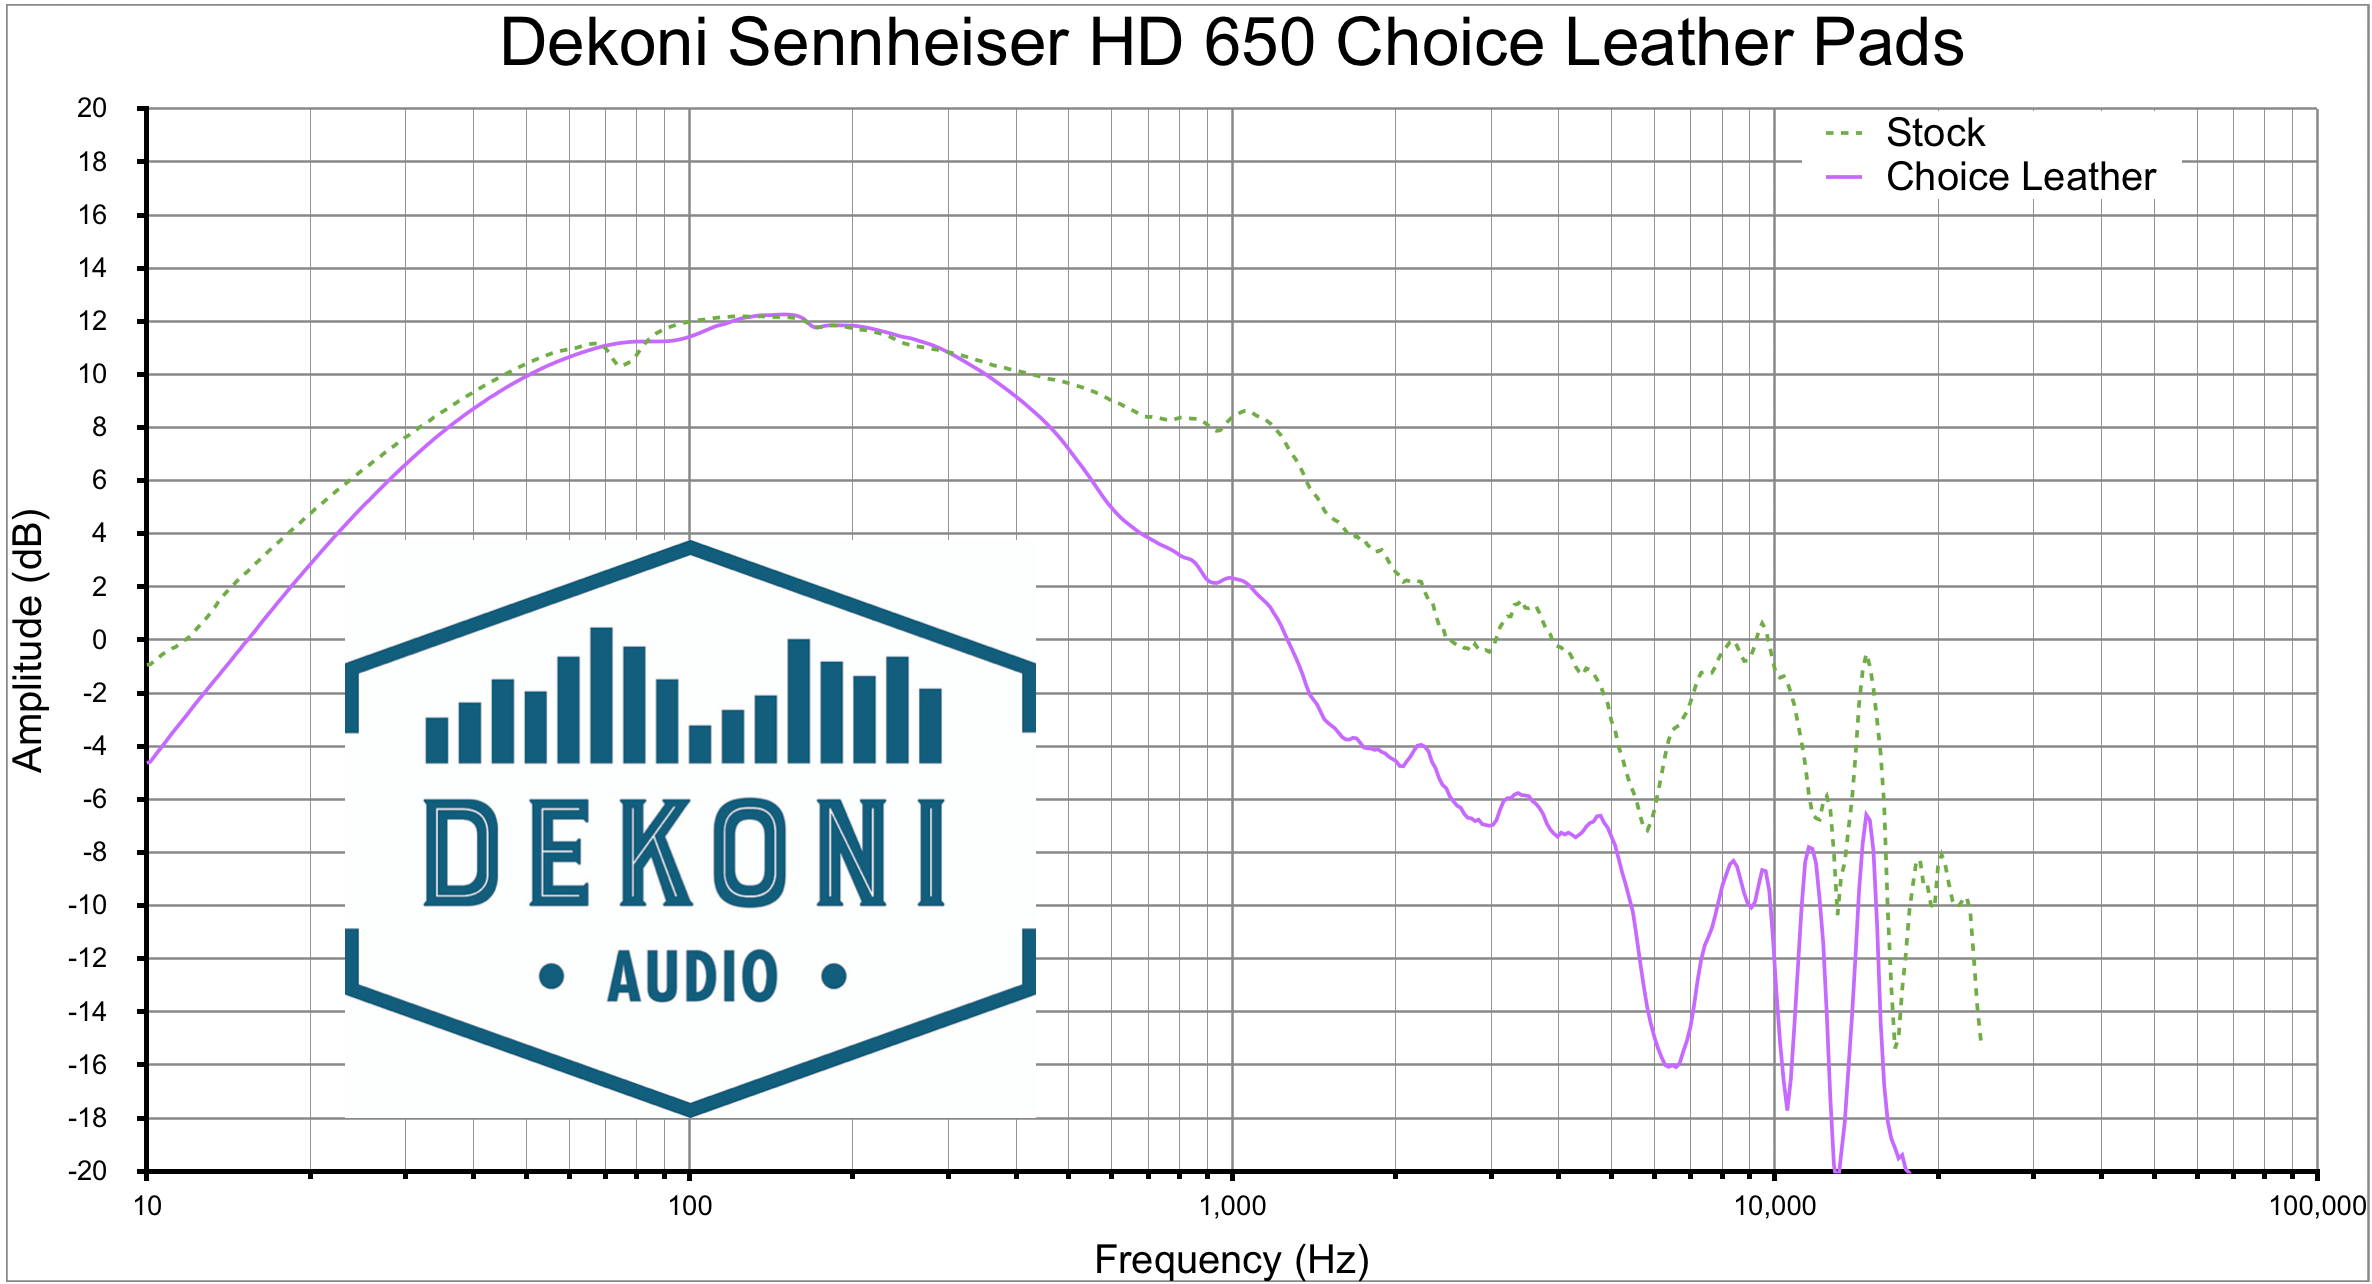 Dekoni HD 650 CHL graph